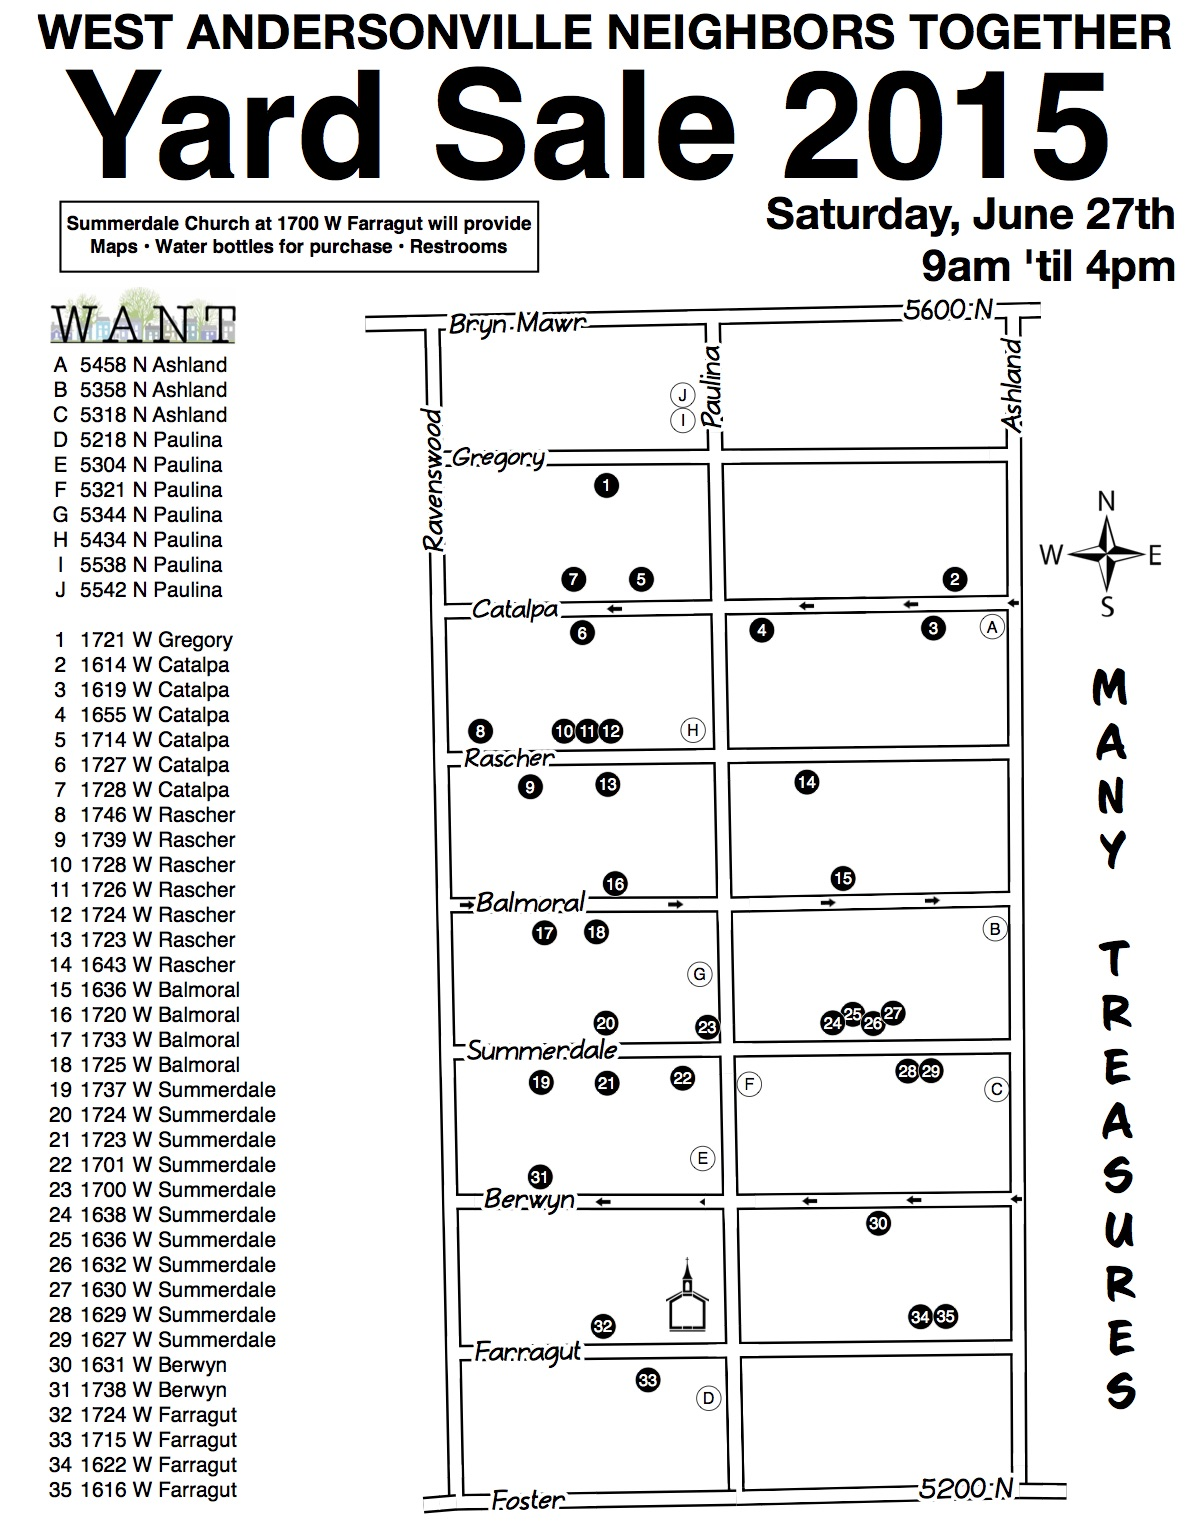 WANTYardSale2015Map